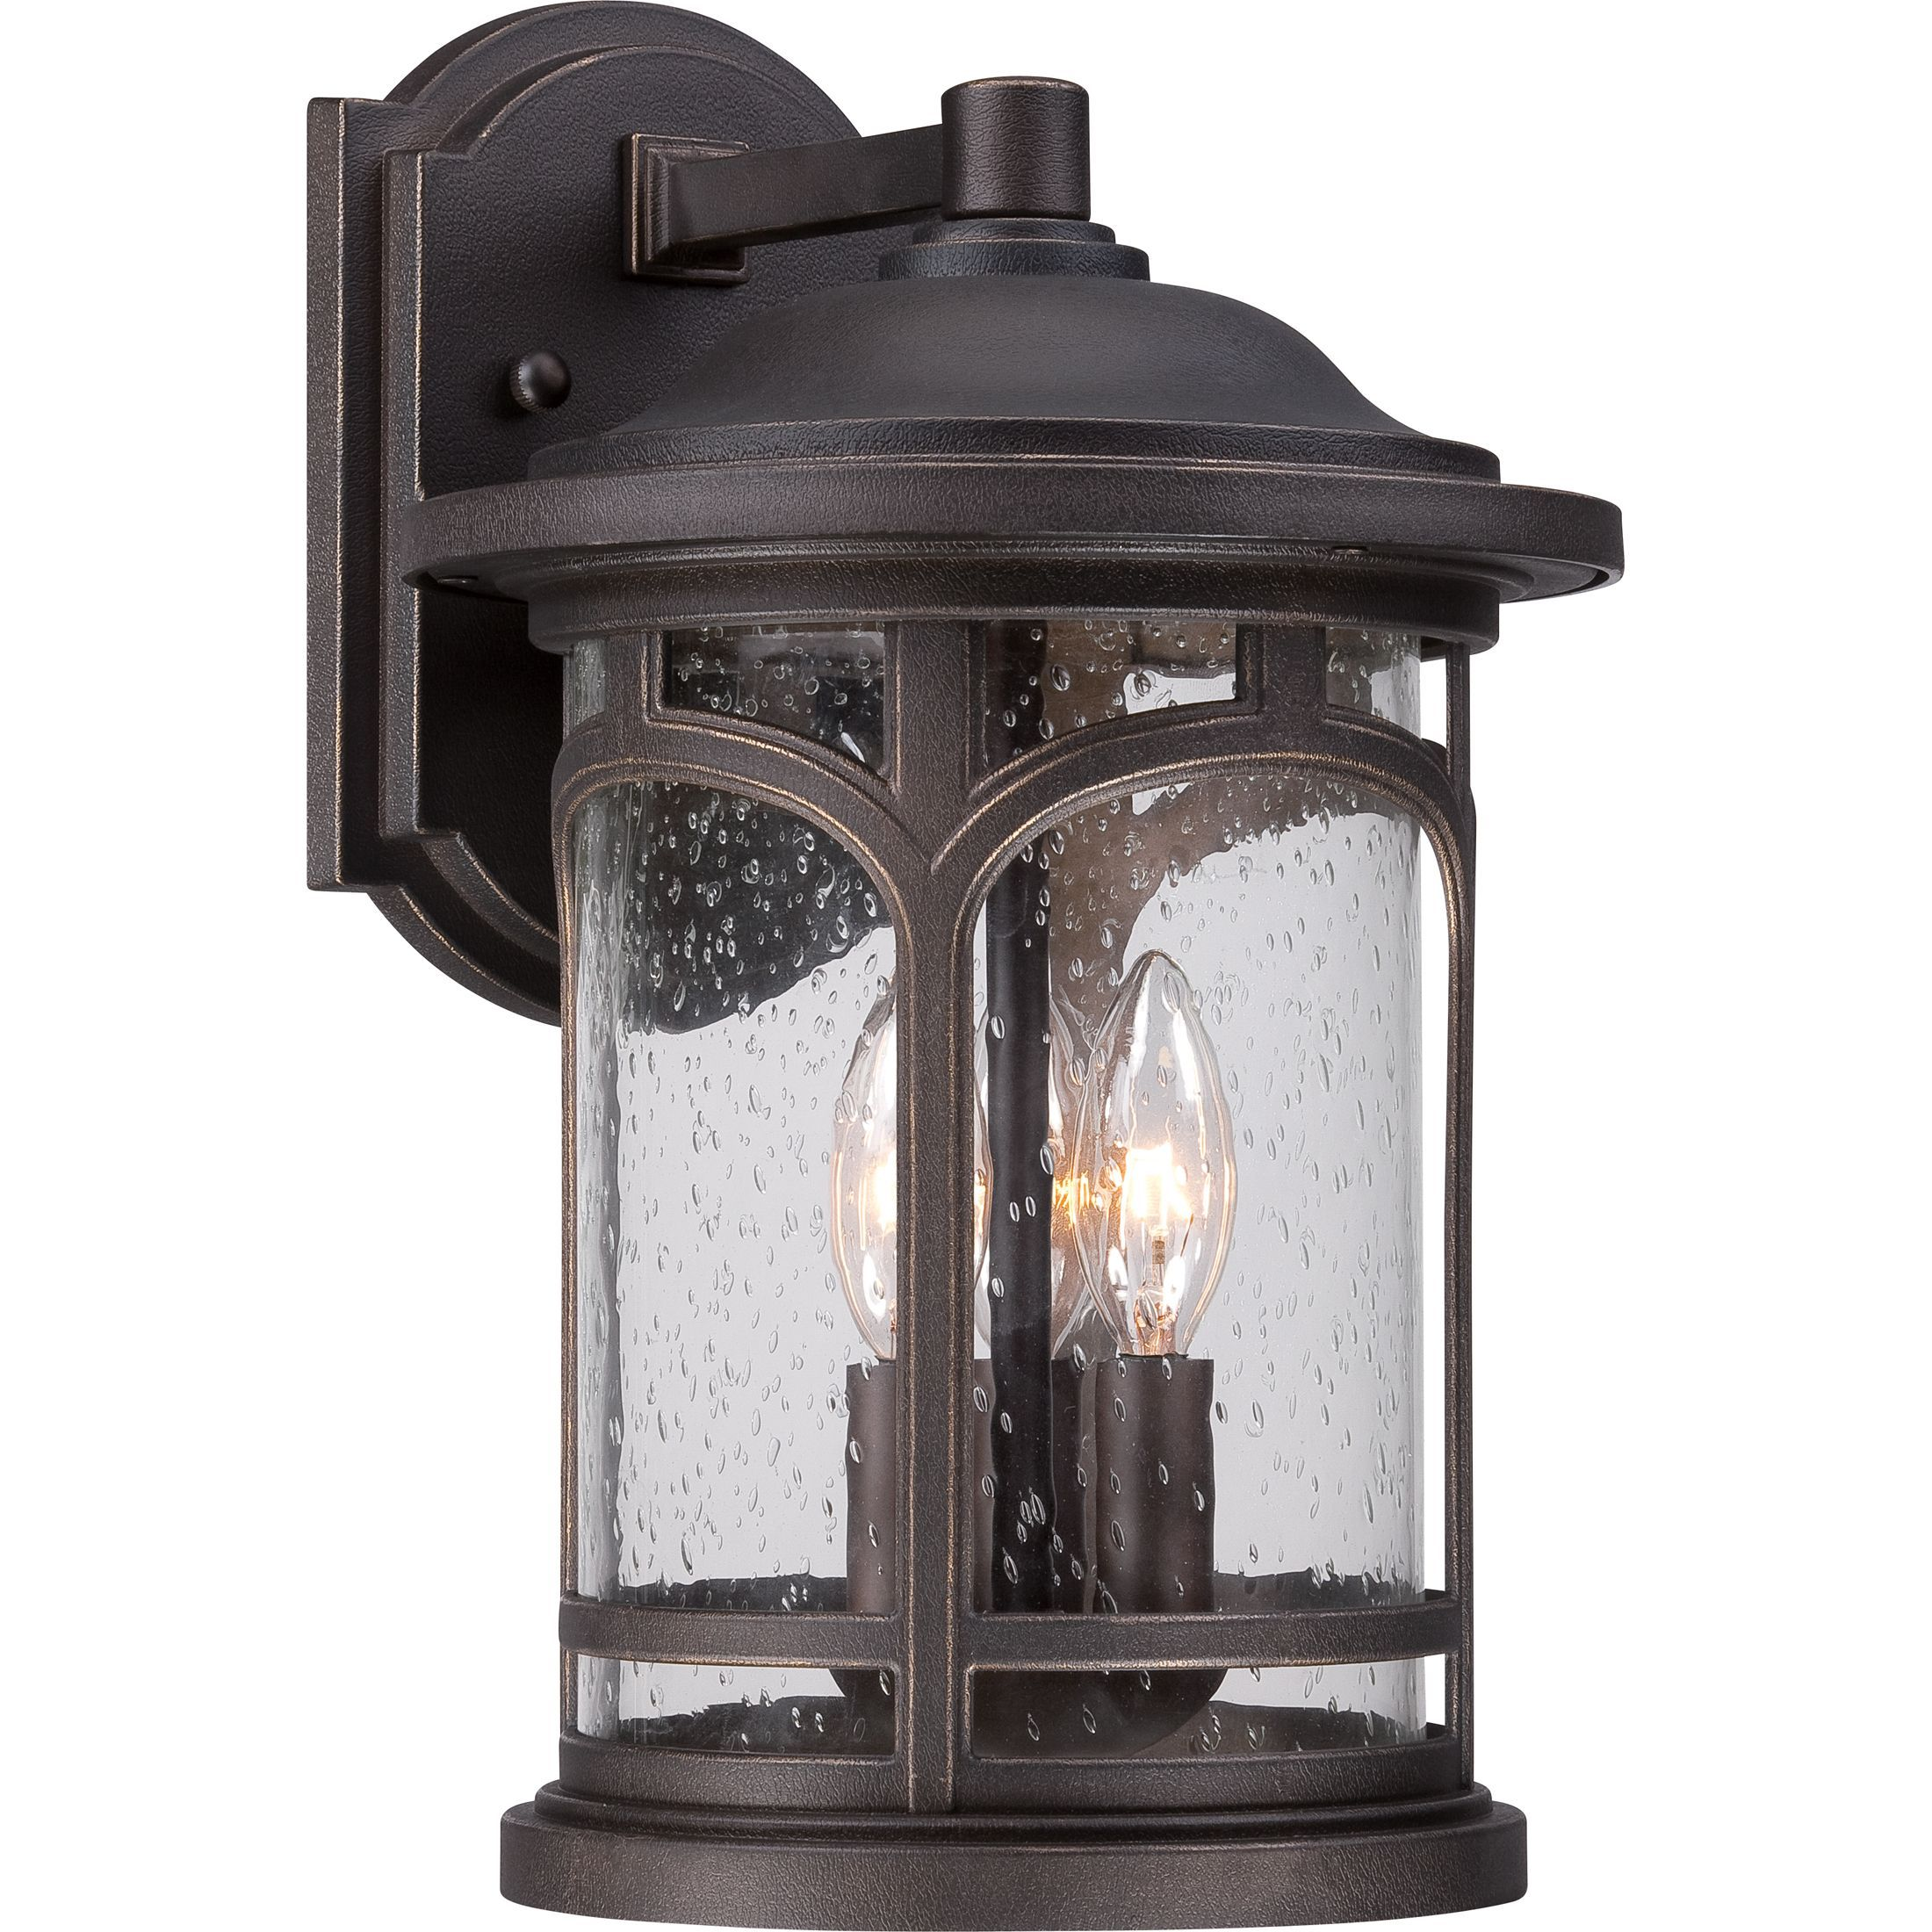 Outdoor Coach Lights Marblehead Is A Rich Masculine Outdoor Series And The Latest Addition To The Quoizel Co Bronze Outdoor Lighting Wall Lantern Wall Lights